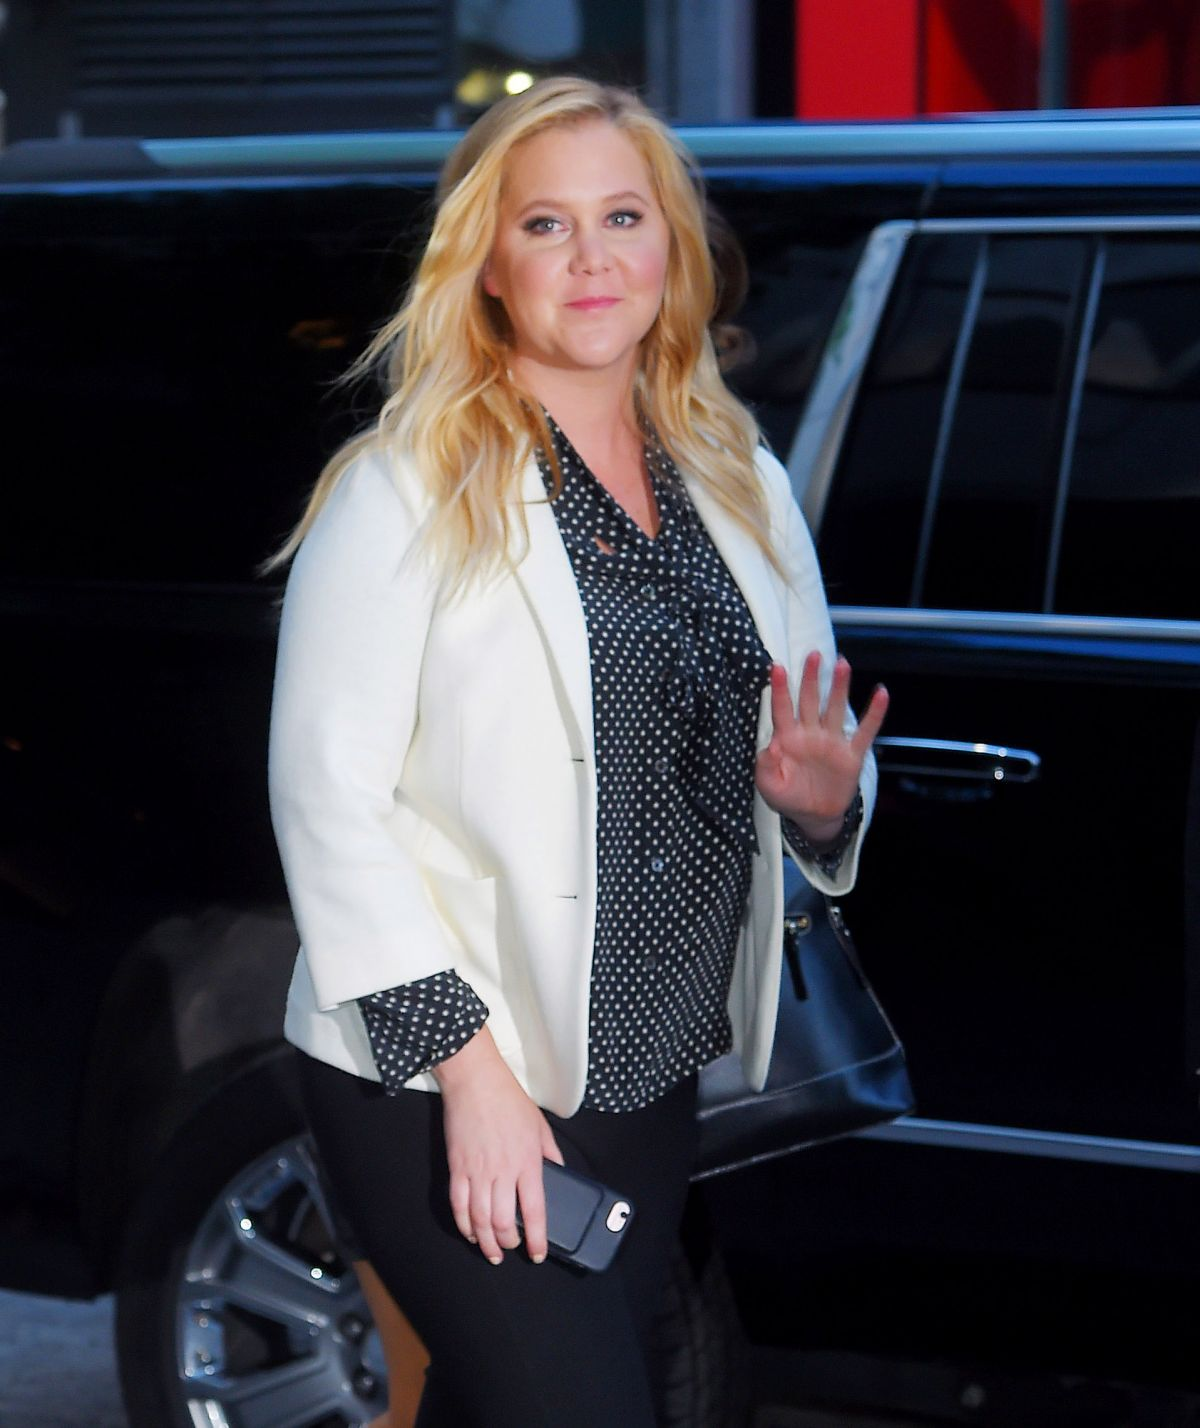 AMY SCHUMER Arrives at MOMA in New York 05/15/2017